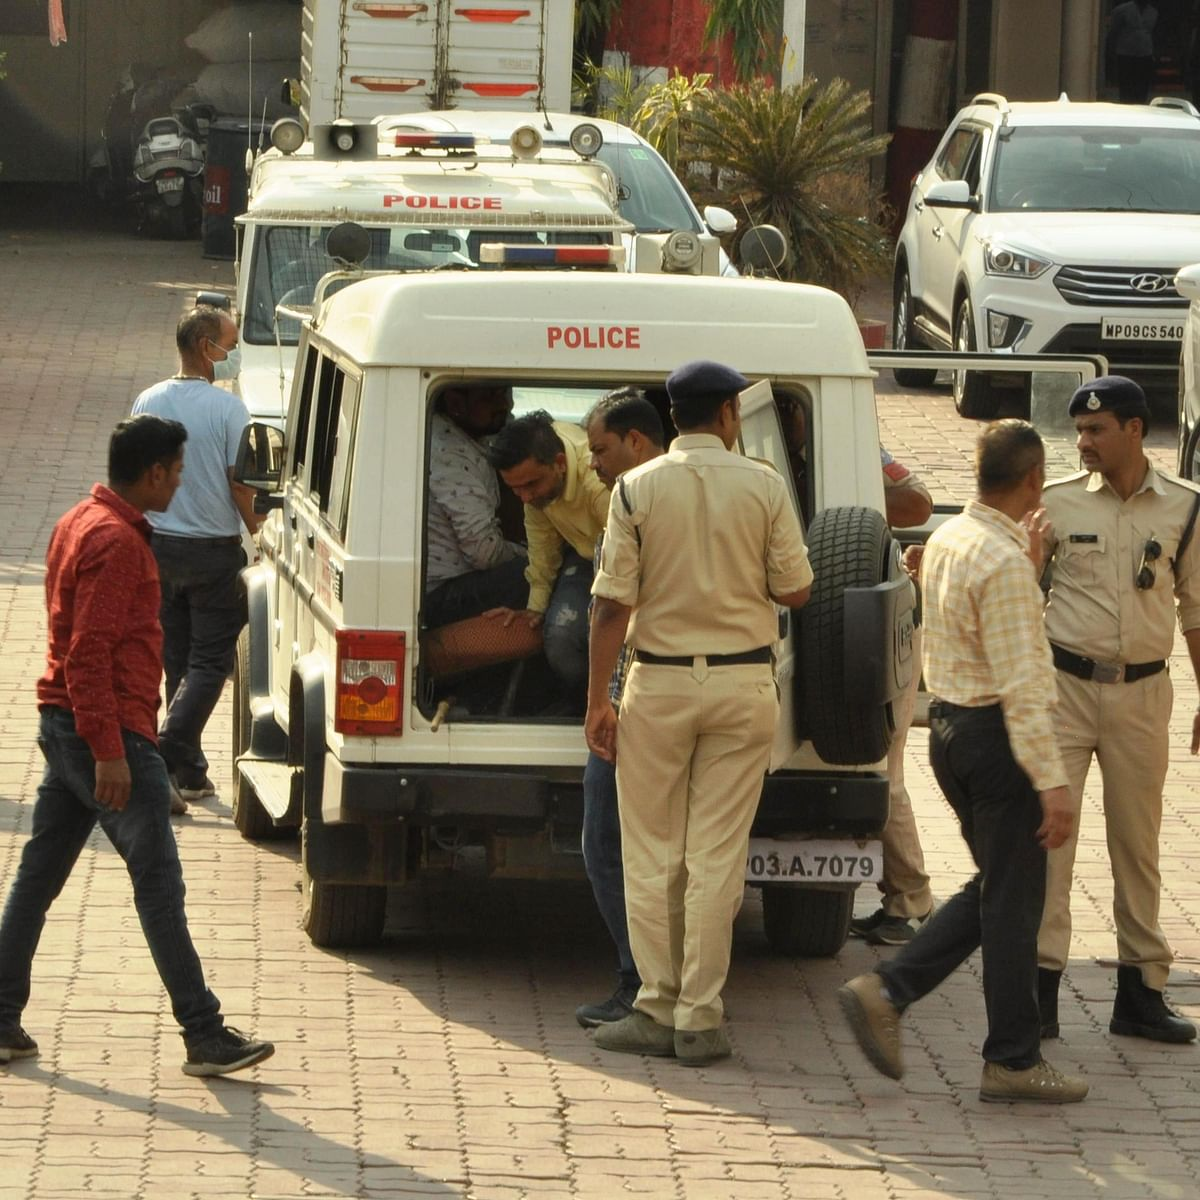 Indore: Four more suspects identified in Hemant Nema's driver death case